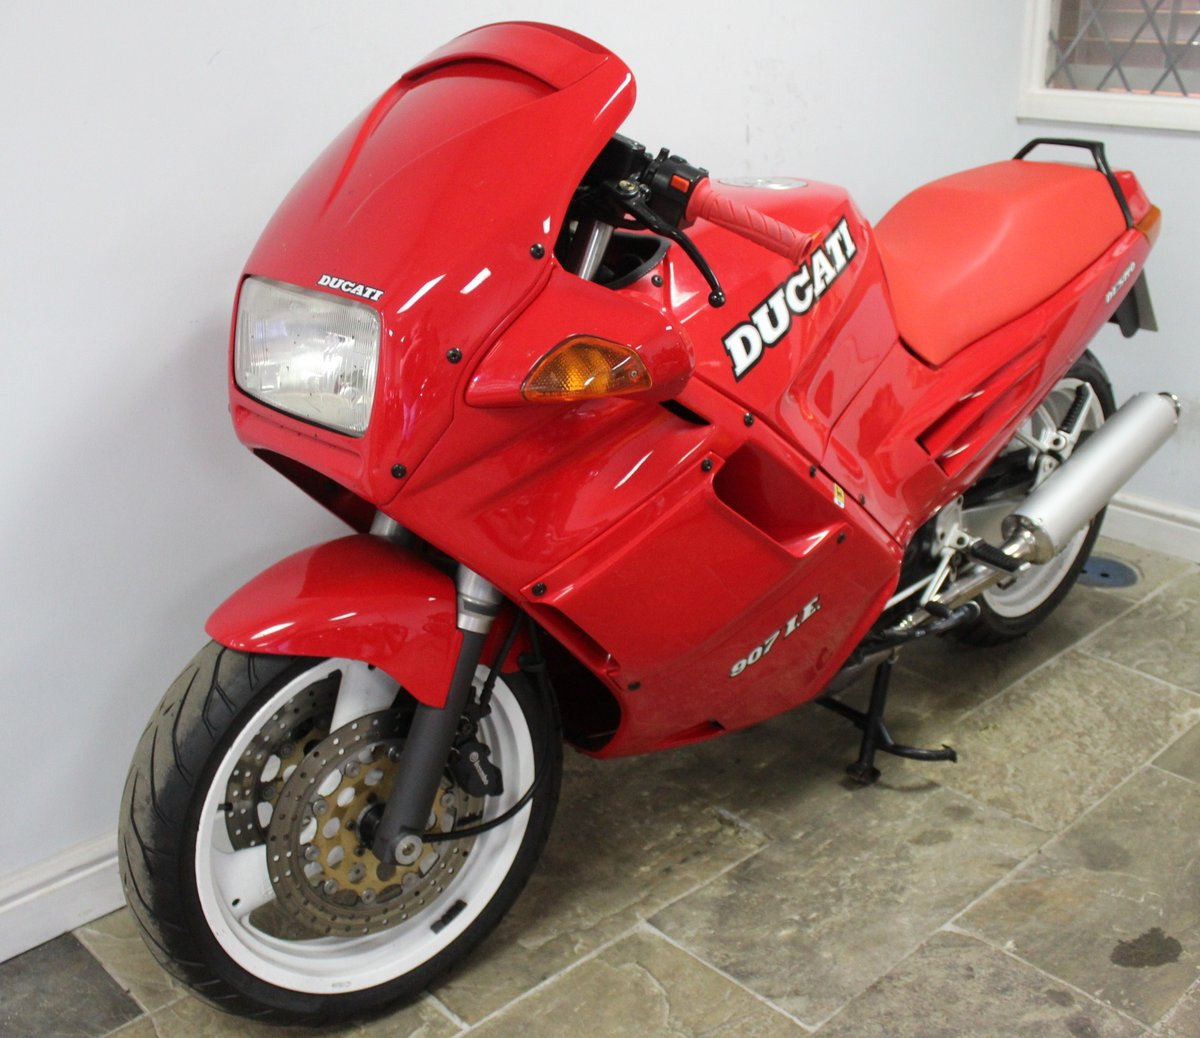 1991 Ducati 907 IE (Injection) 17,714 miles with History For Sale (picture 5 of 6)